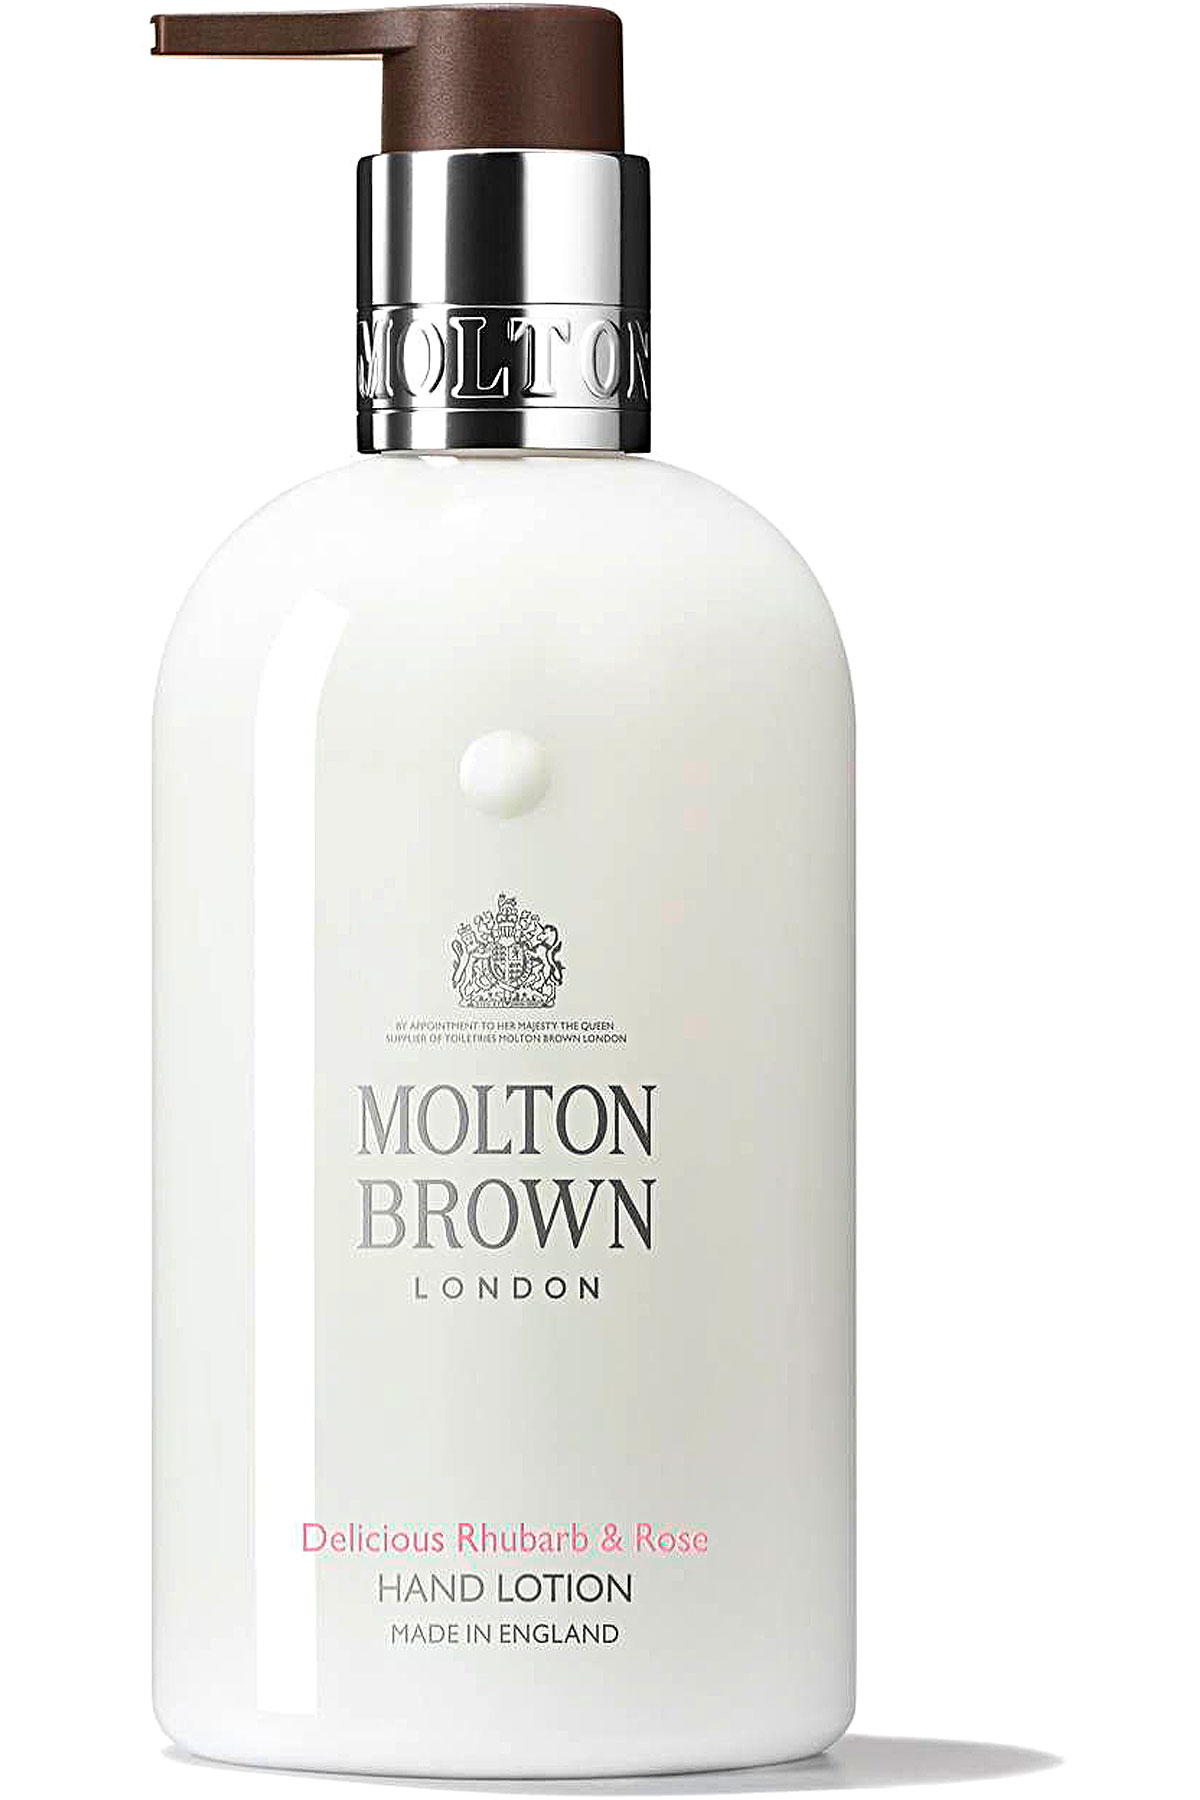 Molton Brown Beauty for Women, Delicious Rhubarb & Rose - Hand Lotion - 300 Ml, 2019, 300 ml